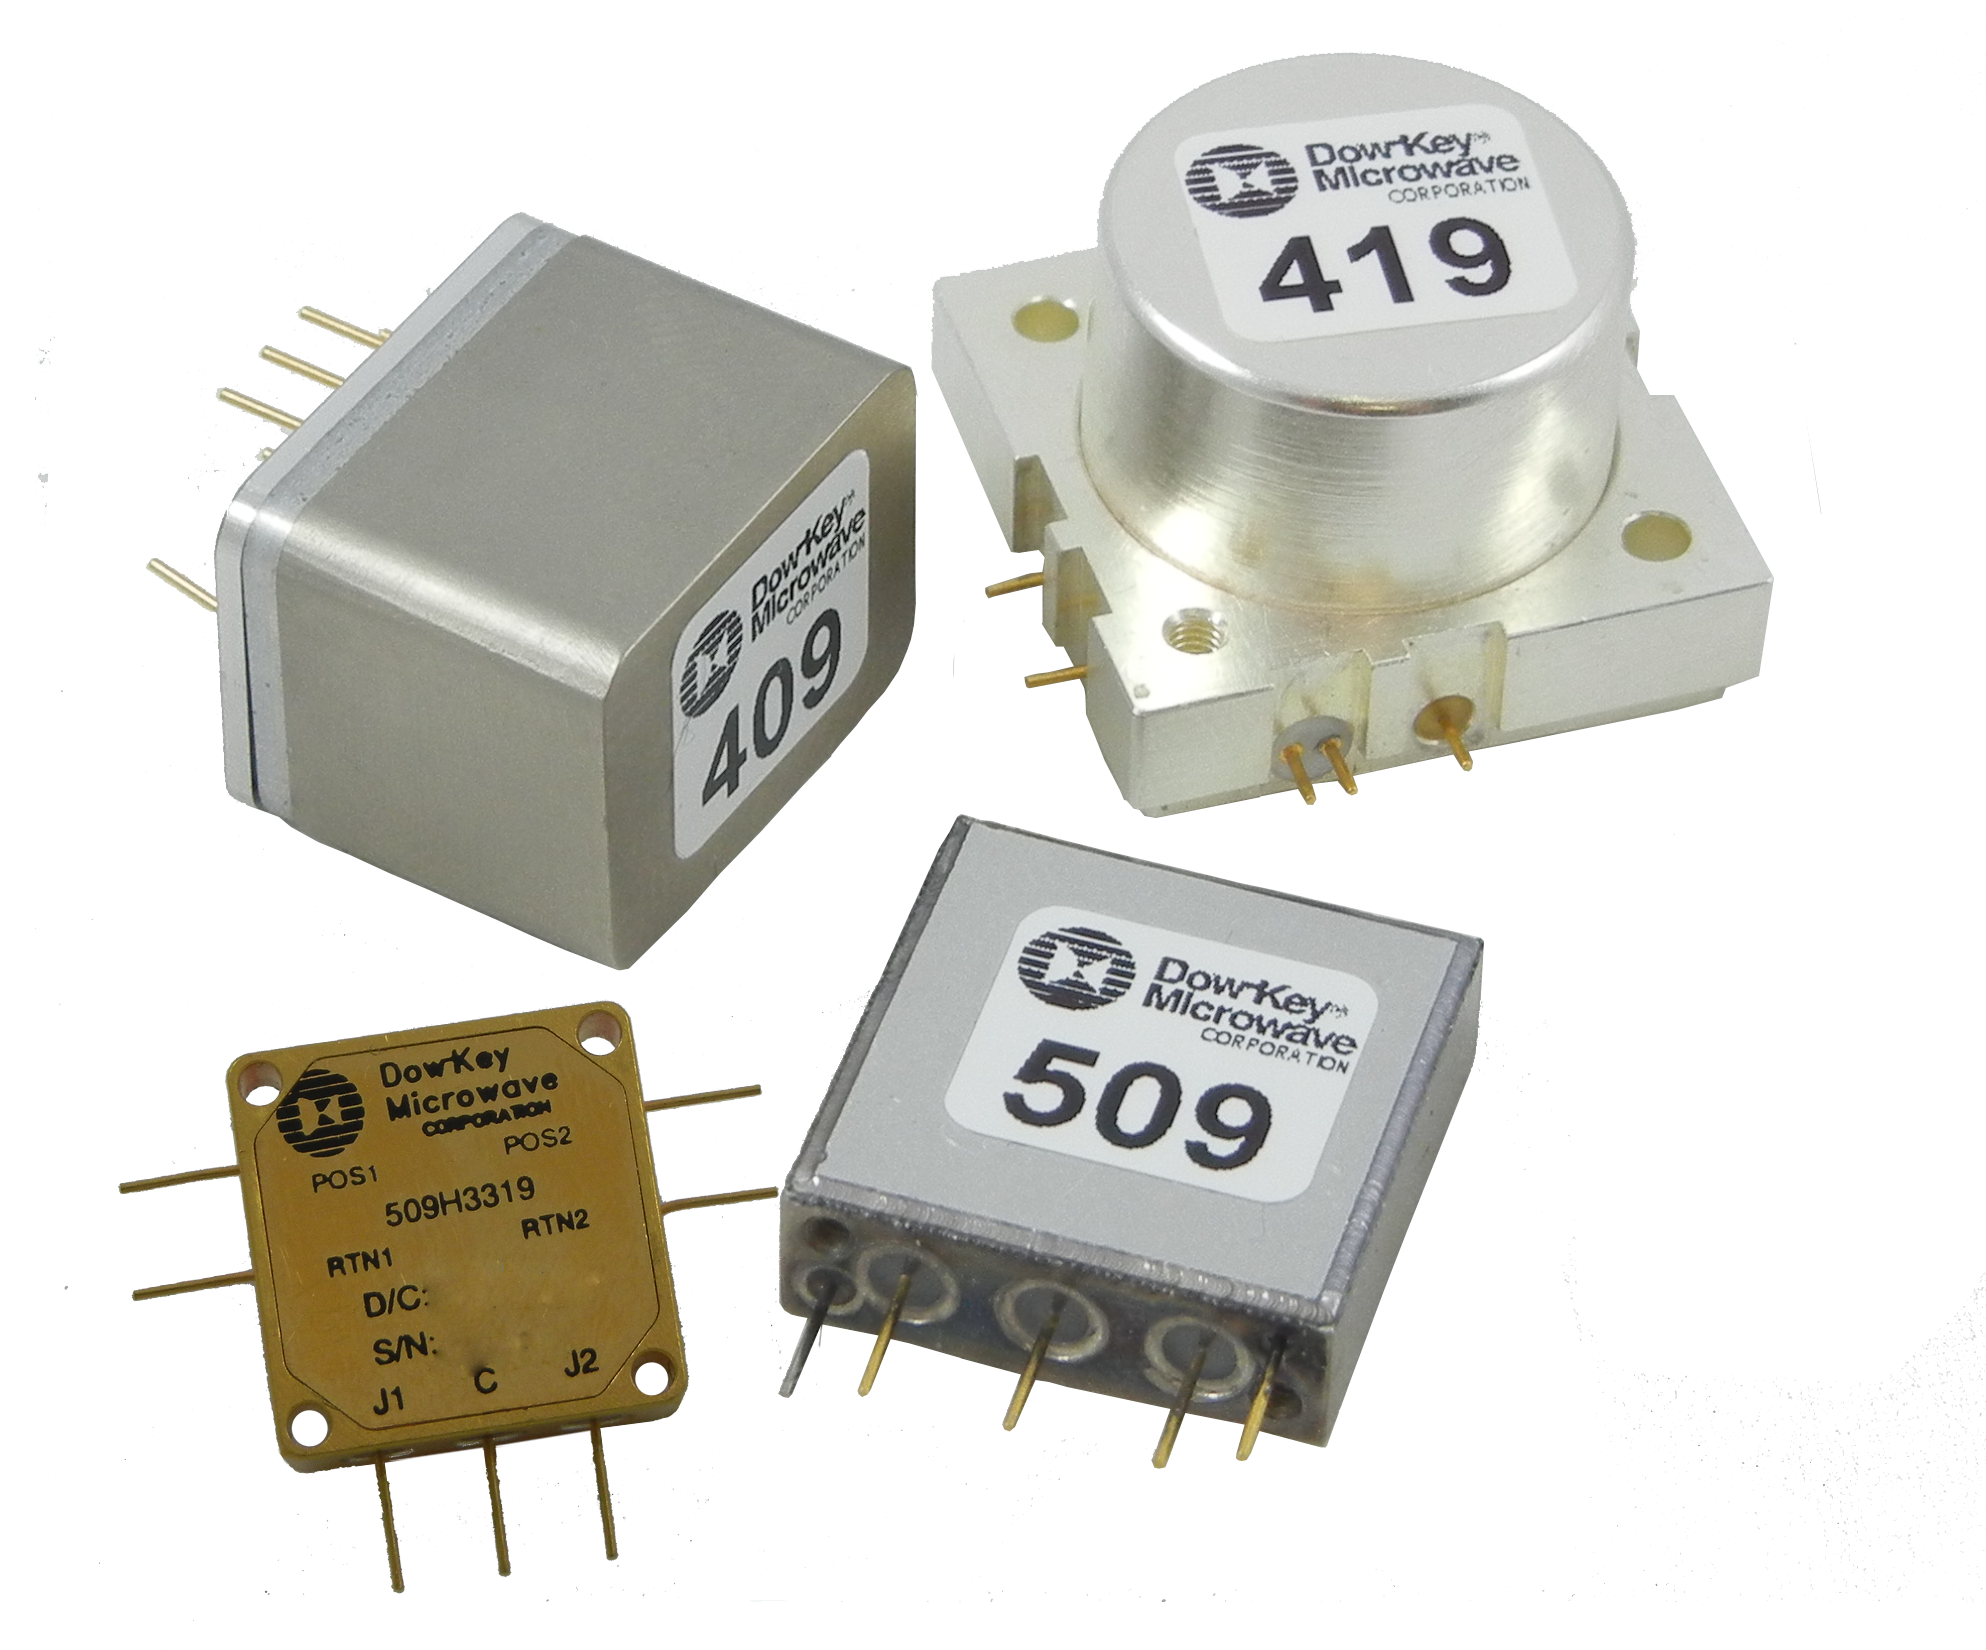 Dow-Key® Microwave to Feature New Miniature Mechanical Switches at Satellite 2017 in Washington, D.C.